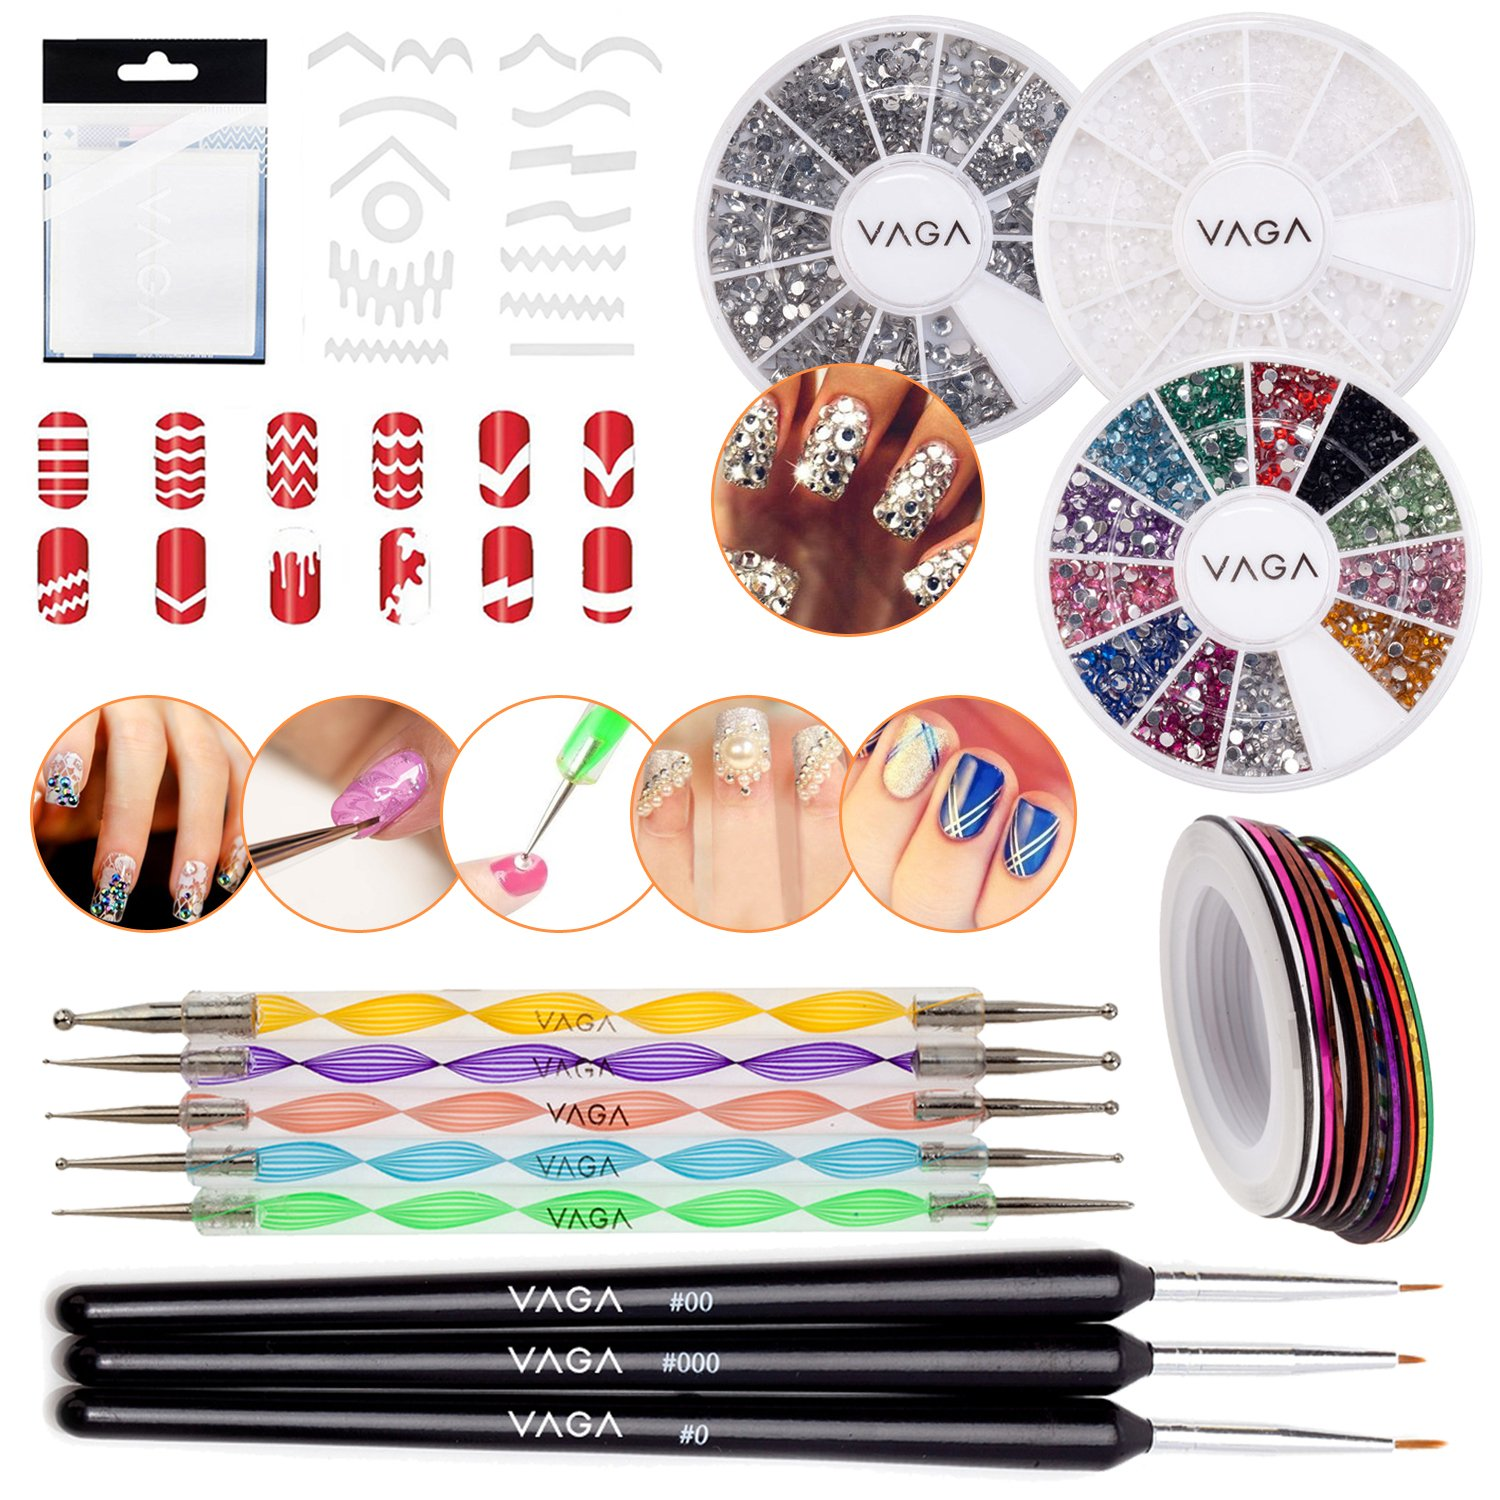 Nail Art Set With 347pcs Guides Strips In 13 Different Shapes, 2 Wheels With Rhinestones, Wheel With White Pearls, 3 Wooden Fine Detail Brushes, 5 Dotting Tools And 30 Rolls Striping Tapes By VAGA